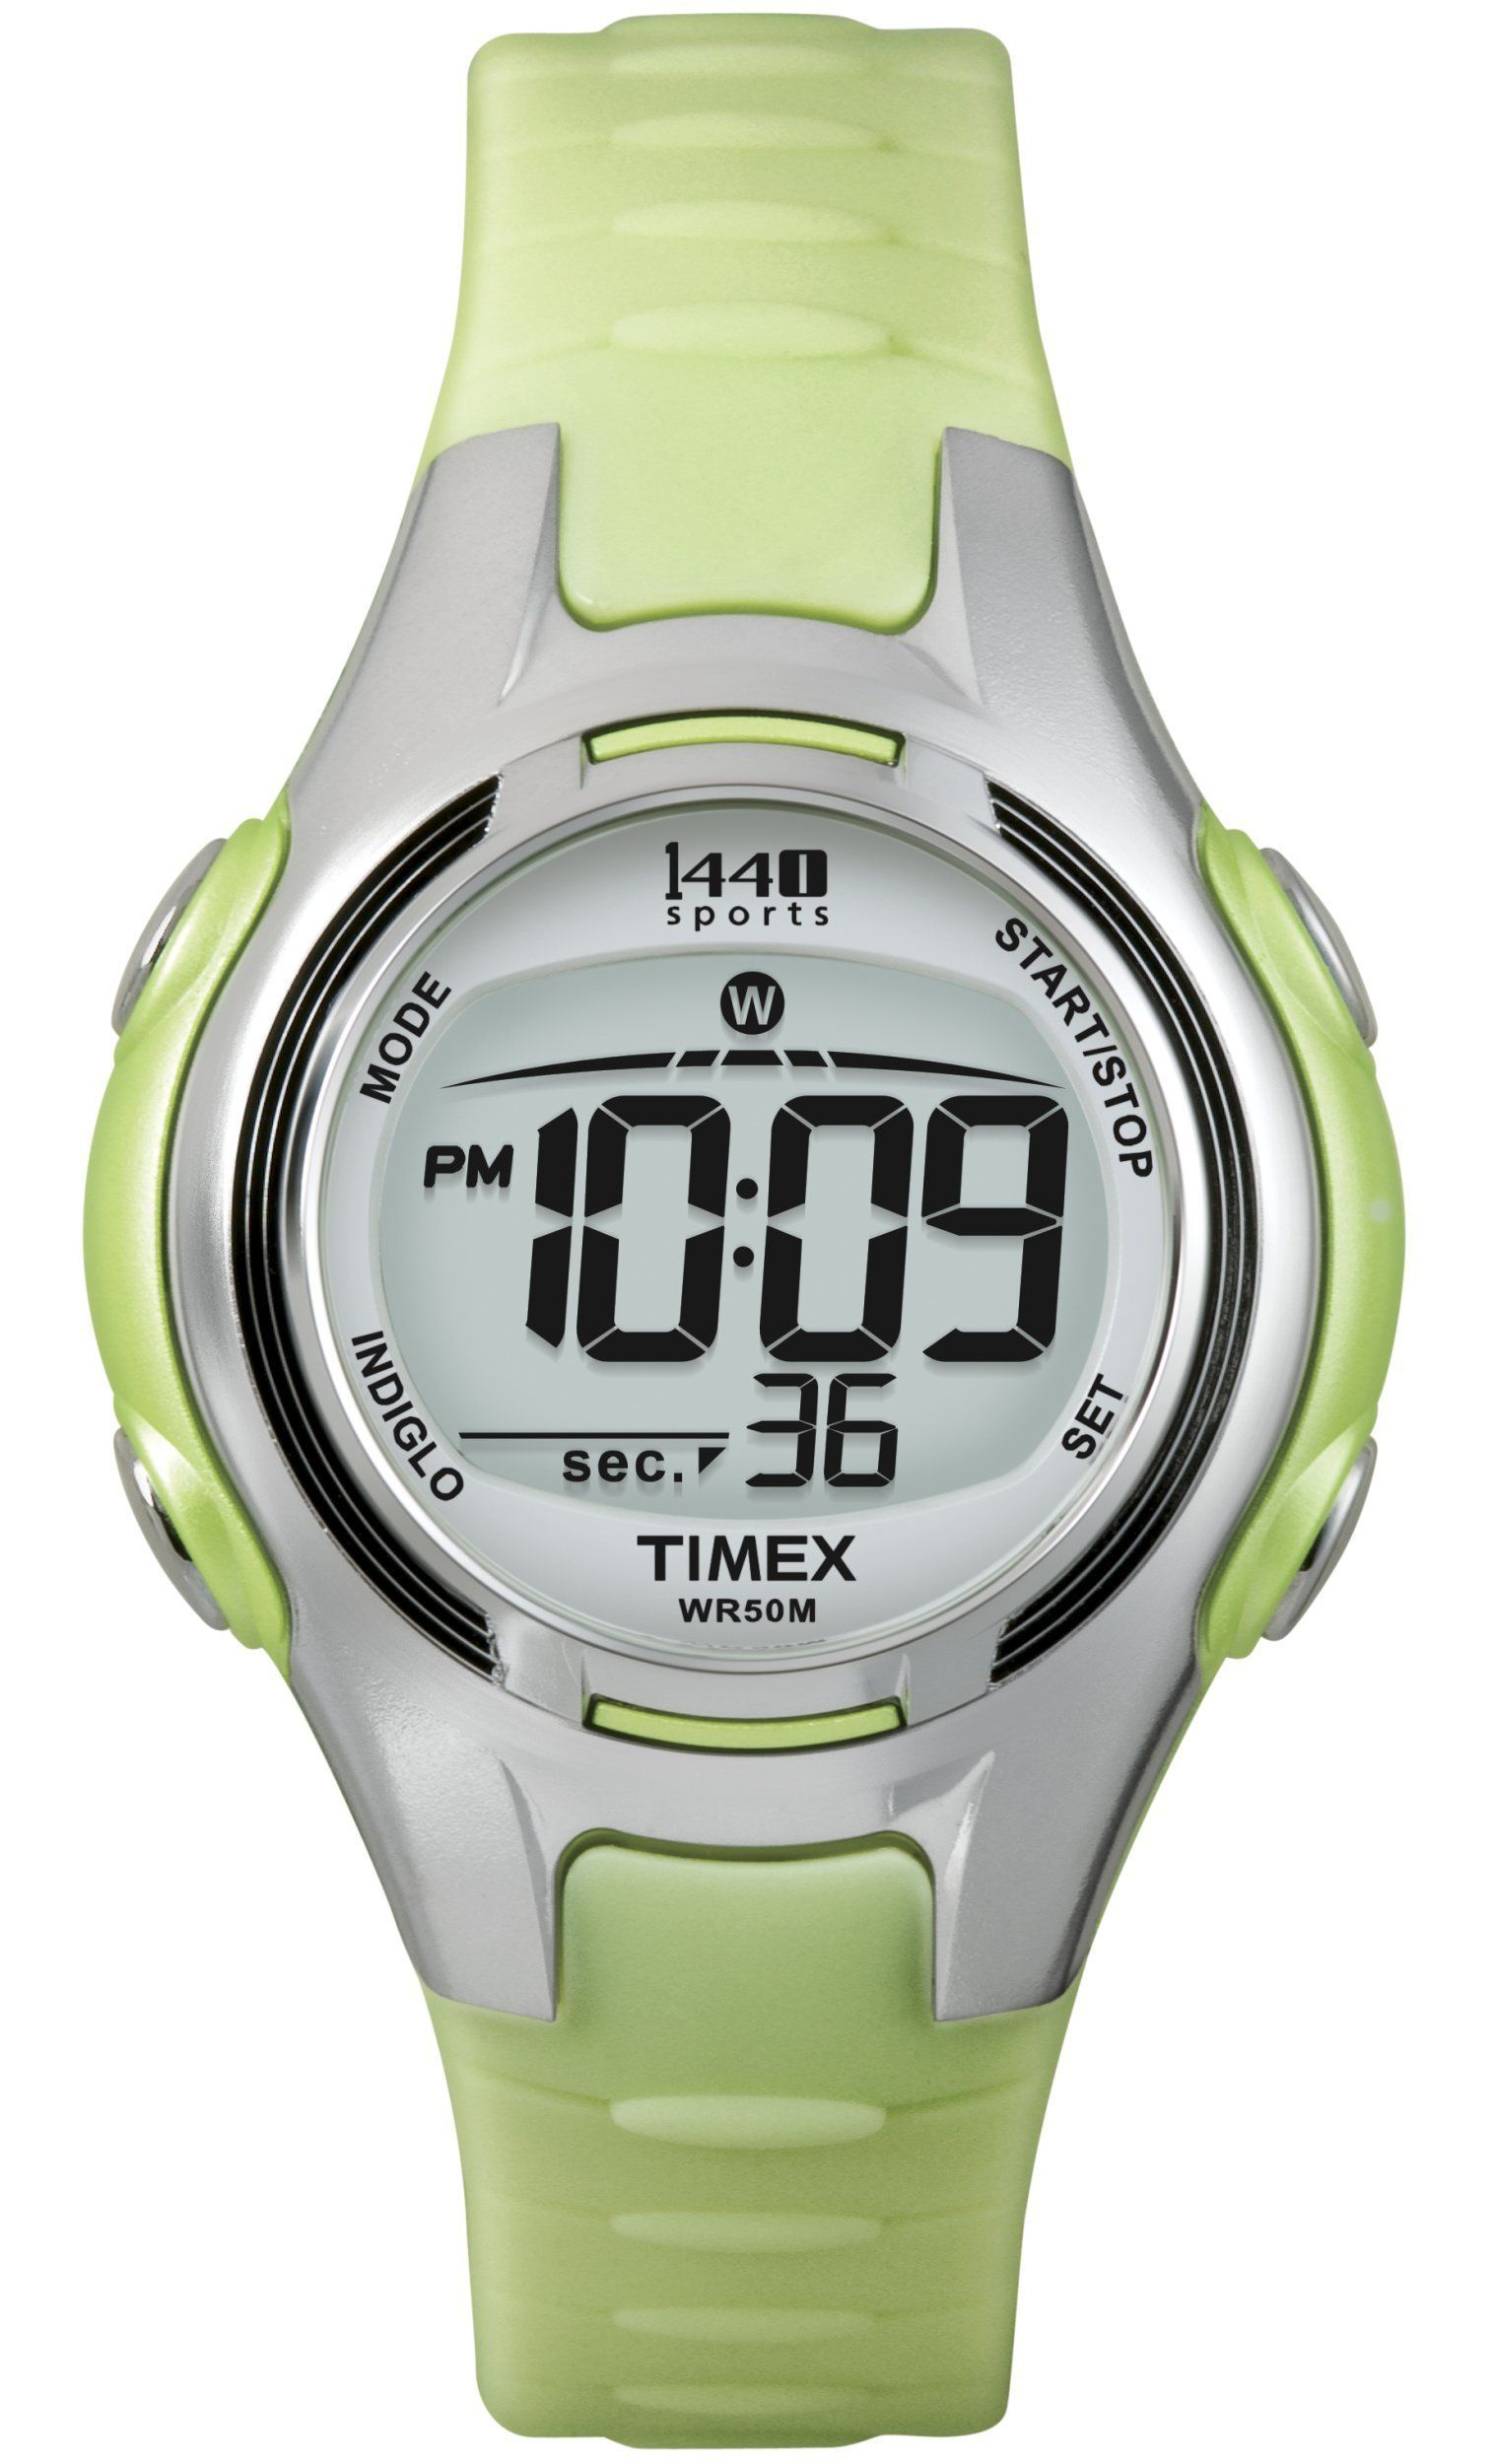 7995b5703 Timex Womens T5K081 1440 Digital Watch with LightGreen Resin Strap -- Learn  more by visiting the image link. (This is an affiliate link) #watches